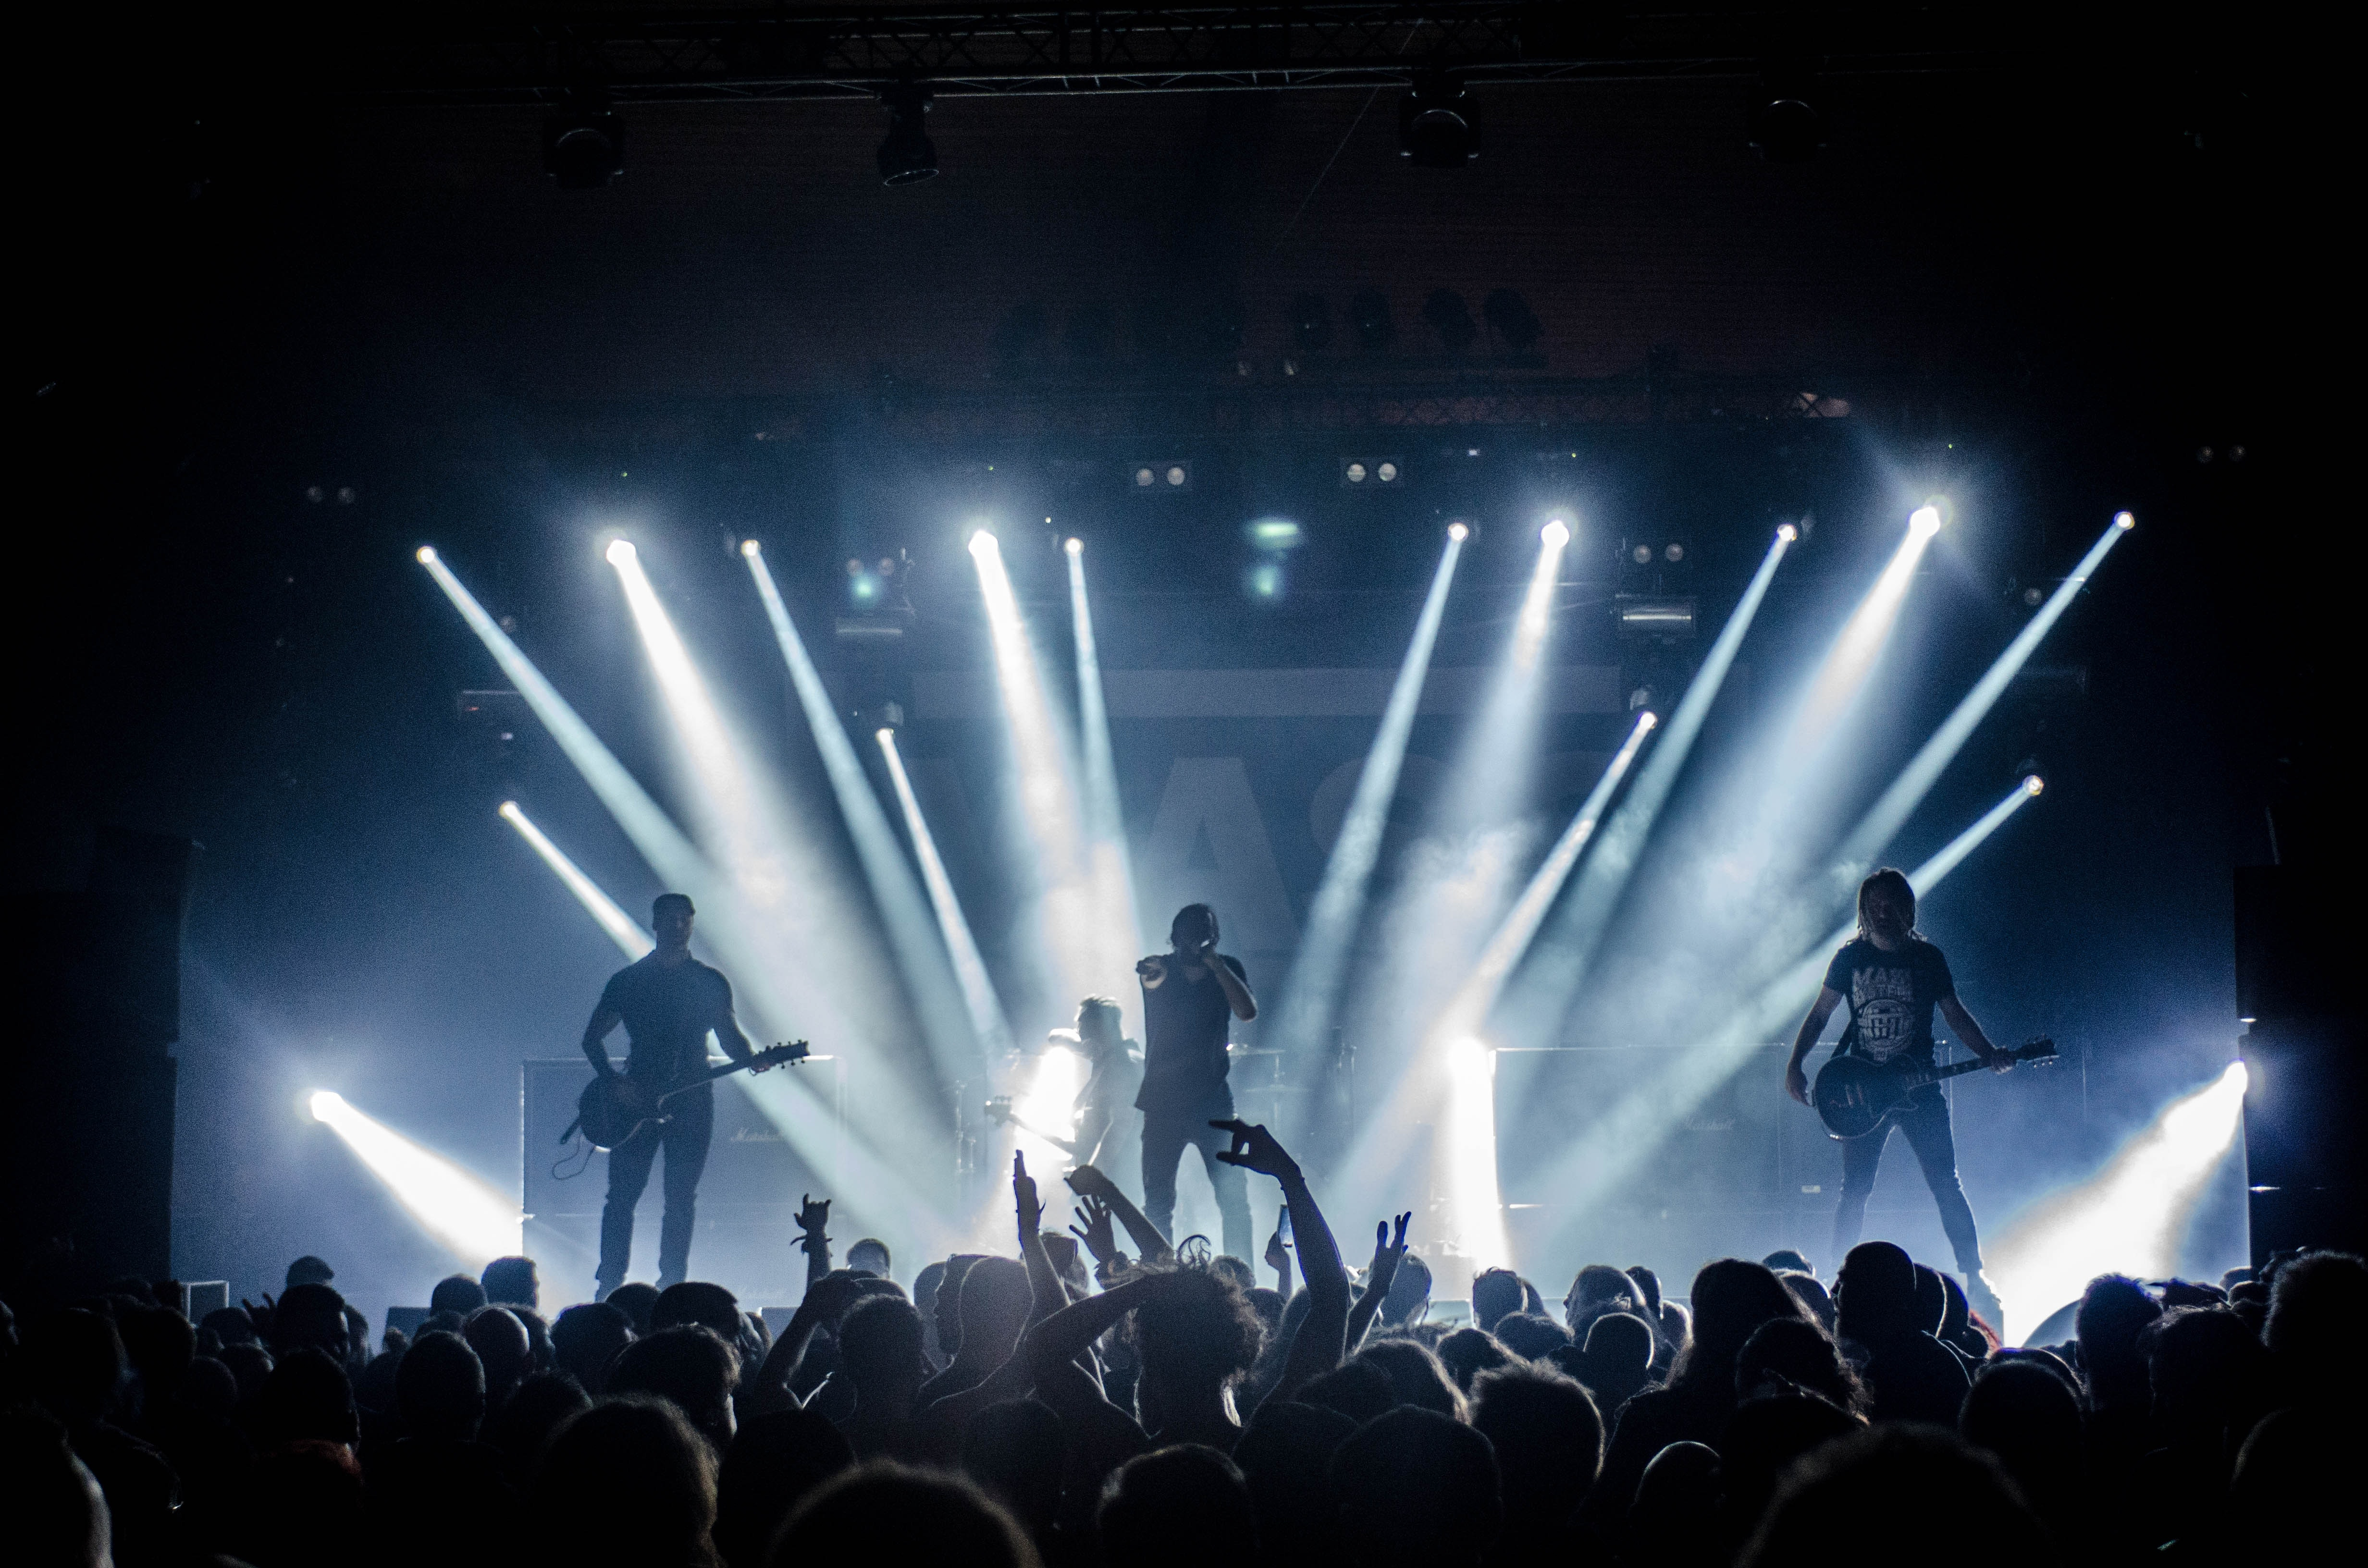 Photograph of a rock band performing on stage in front of a large audience.